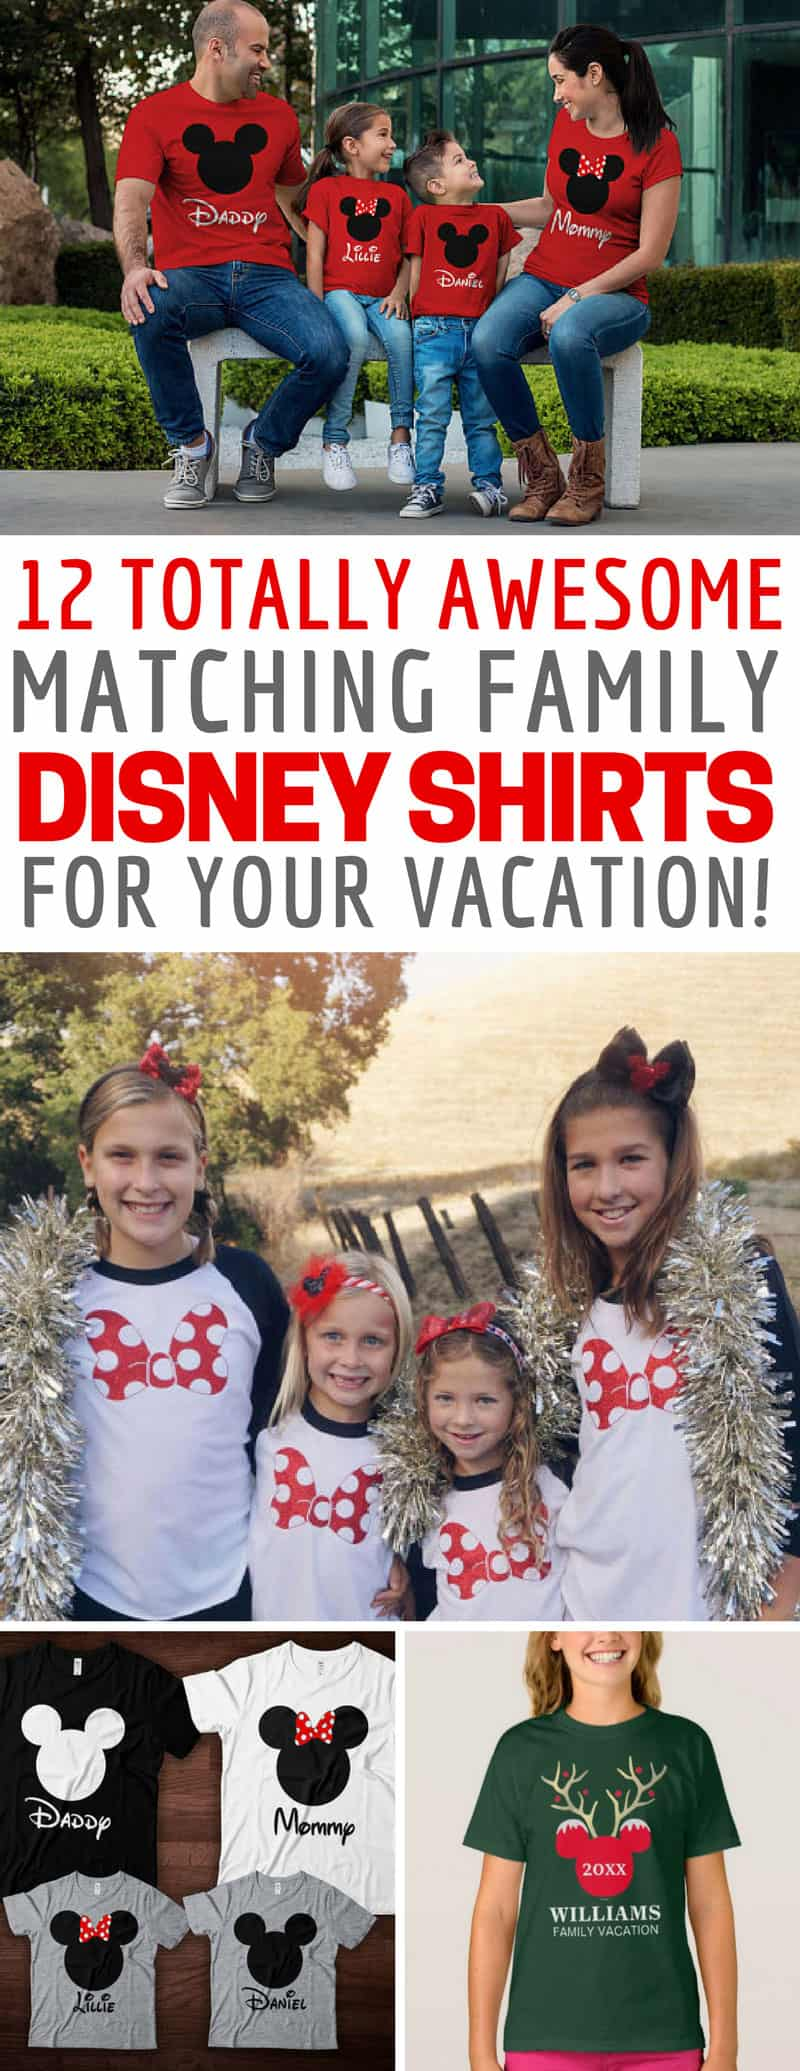 Matching Disney Shirts for the Whole Family: Celebrate your Disney vacation and stand out from the crowd with these matching Disney family shirt ideas! They're perfect for a family reunion!